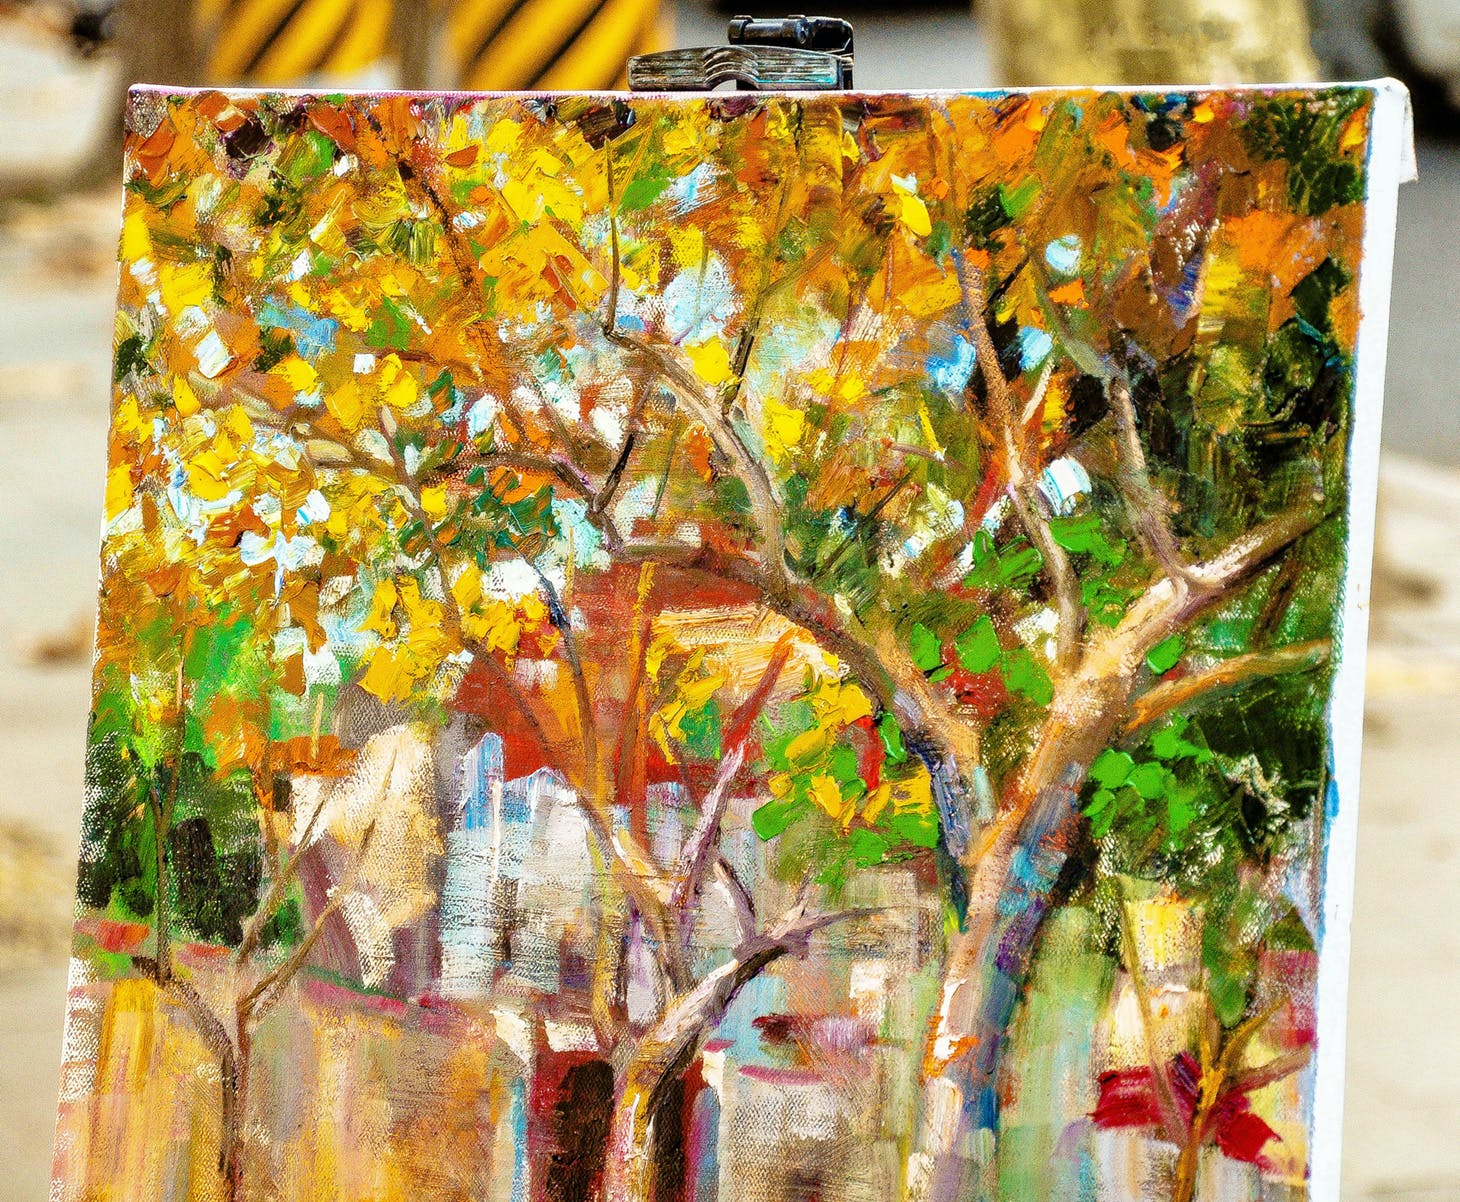 Free stock photo of landscape, street, yellow, painting